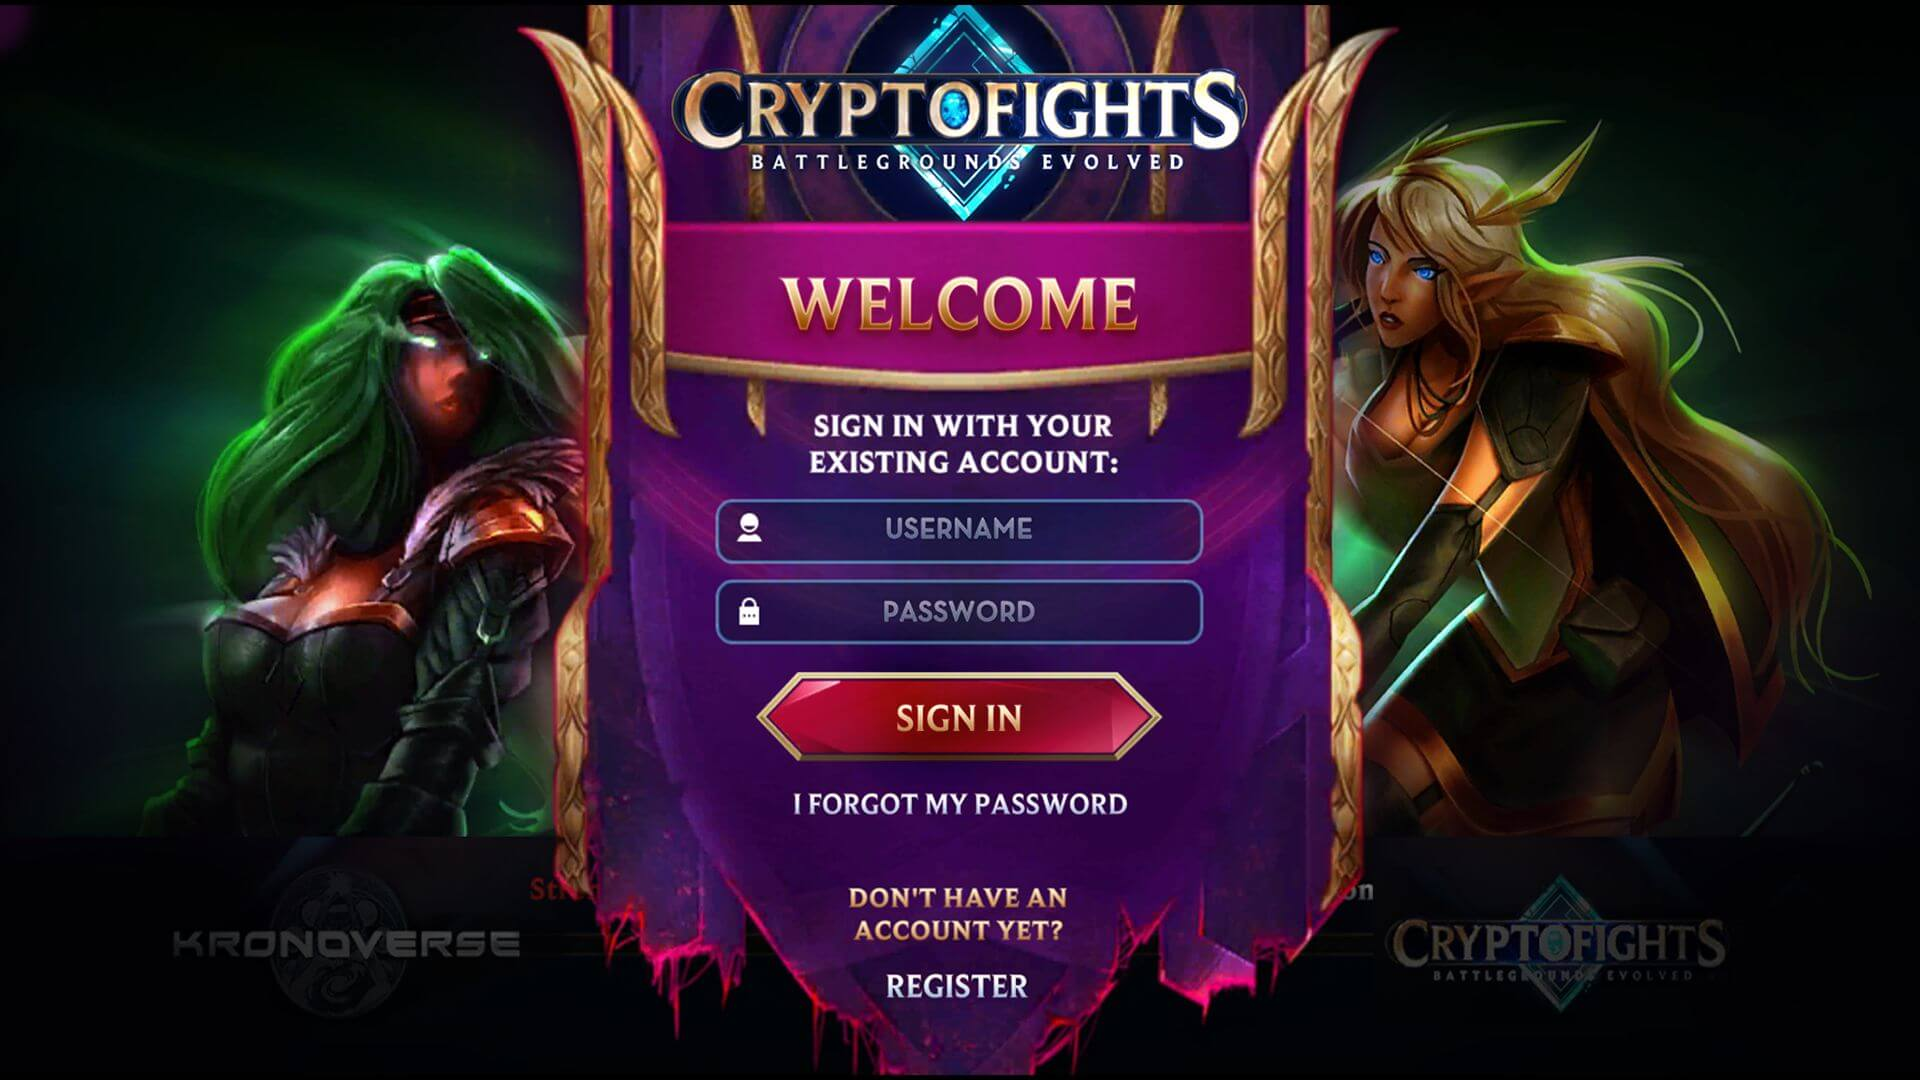 Cryptofights: Battlegrounds Evolved